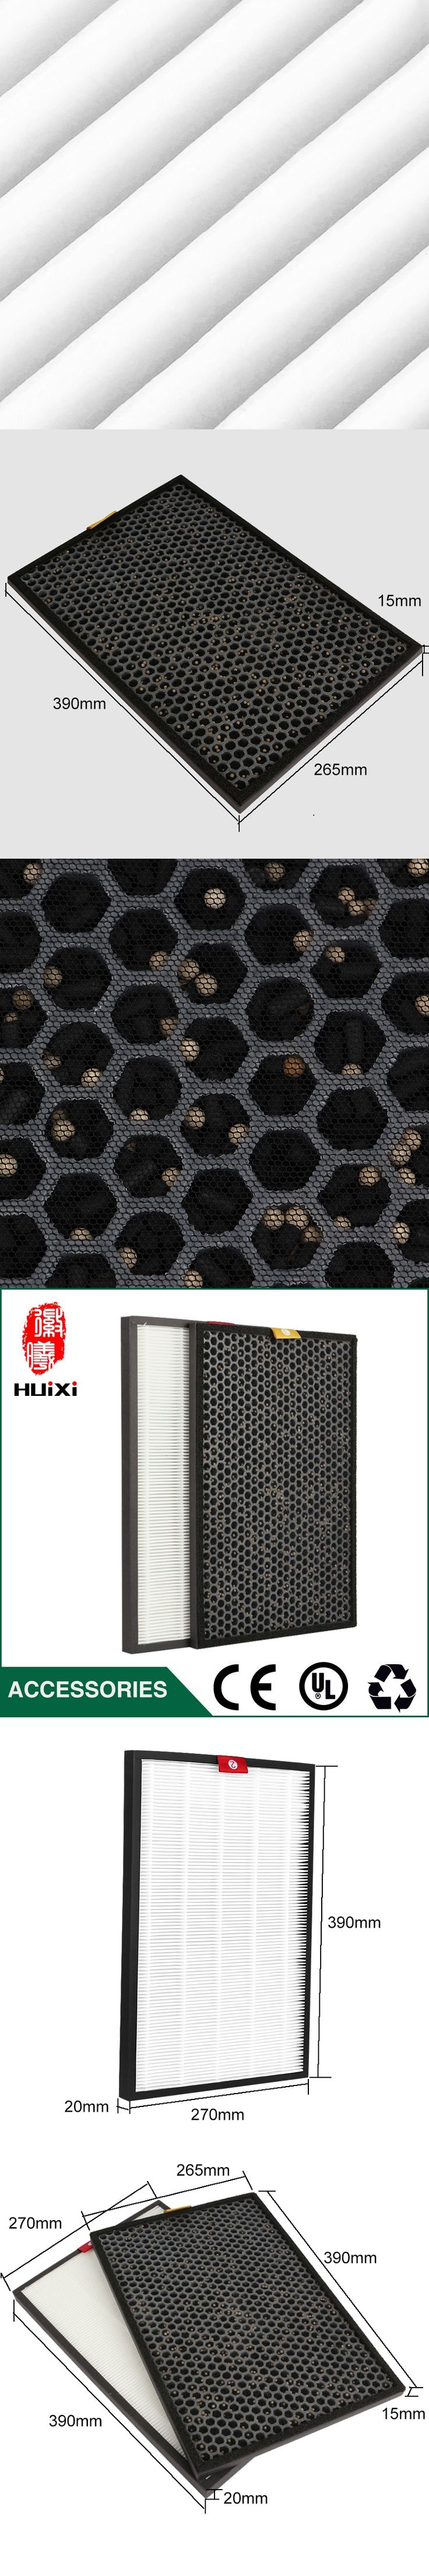 The HPF35M1120 hepa filter + OCF35M6001HiSiv activated carbon filters, hot sale high efficient composite air purifier parts